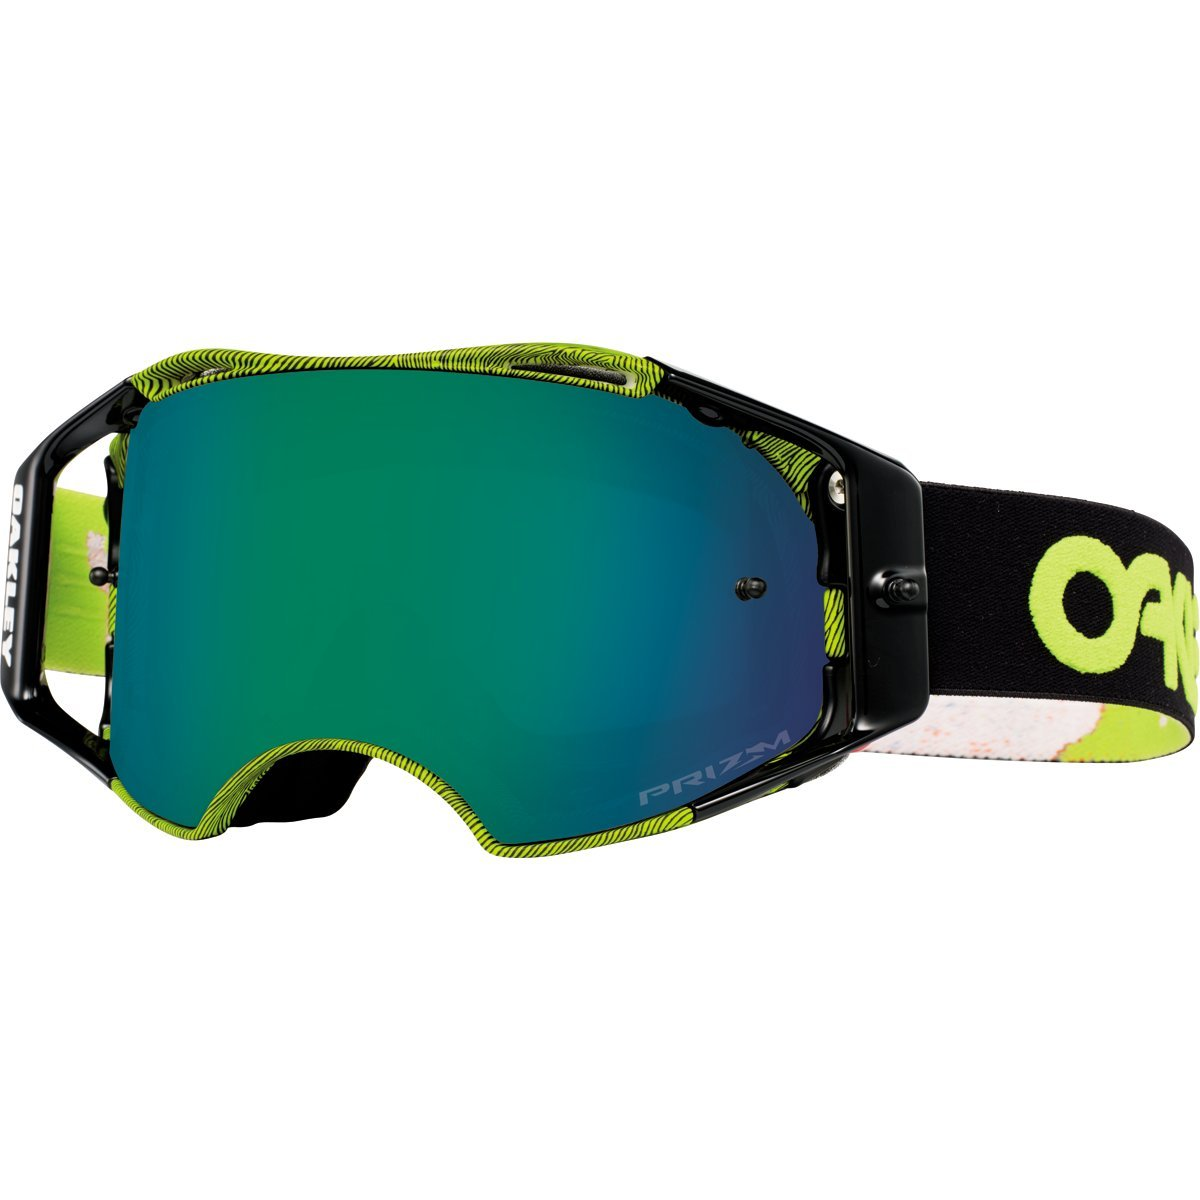 Oakley Airbrake MX Factory Pilot Collection Adult Off-Road Motorcycle Goggles Eyewear - Thumbprint Green/Prizm MX Jade/One Size Fits All by Oakley (Image #1)